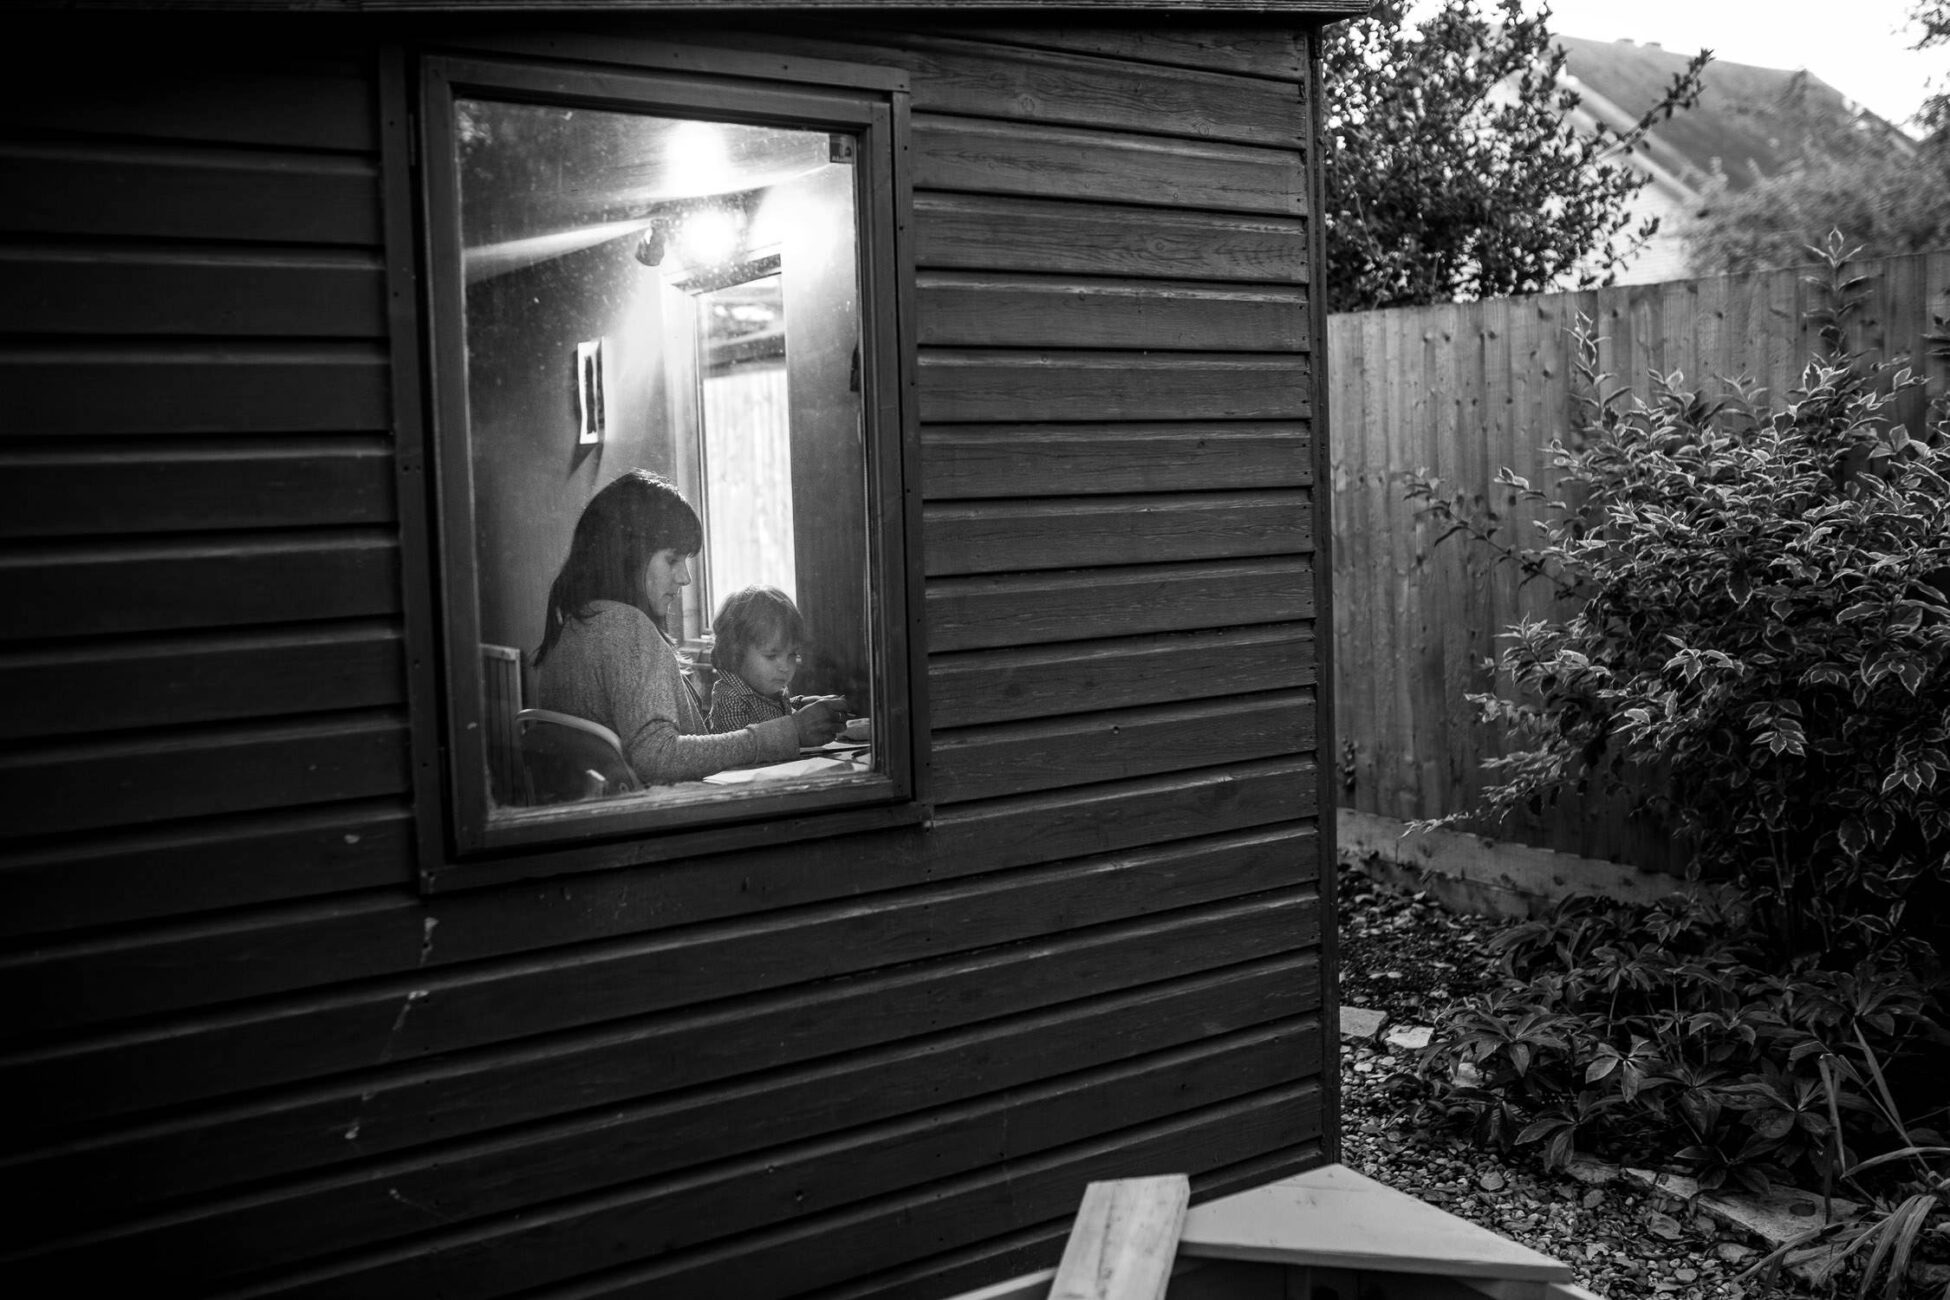 mom and little boy having a quiet moment, drawing and enjoy their garden shed during a family photoshoot